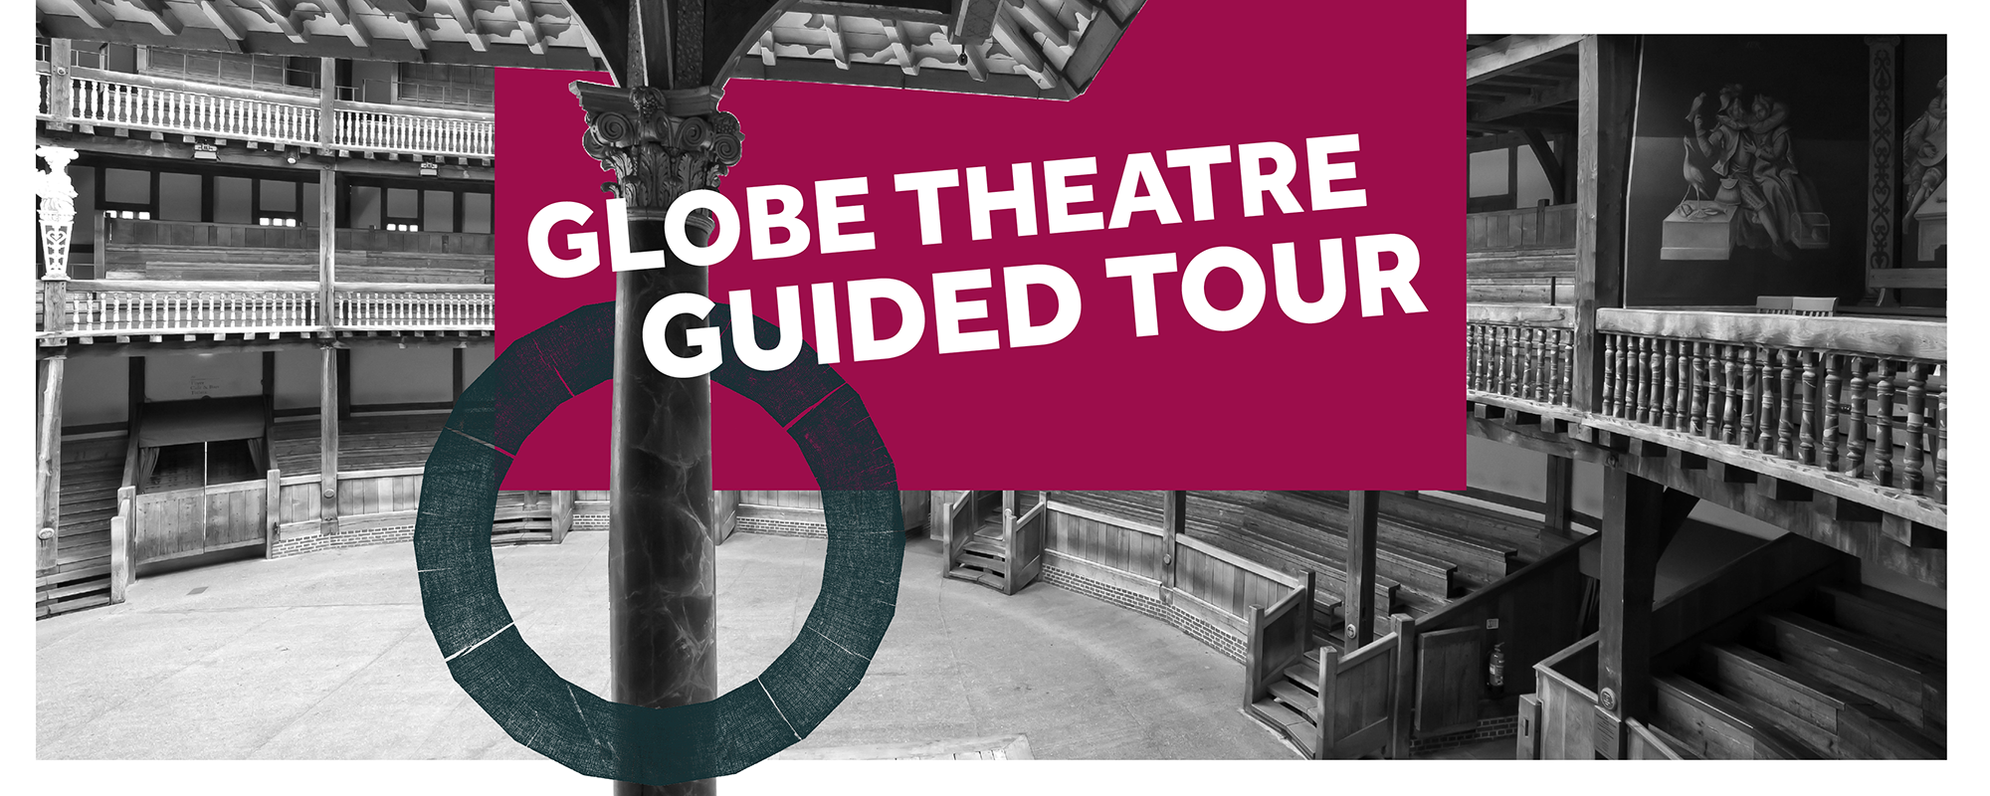 A black and white image of an outdoor theatre with the words 'Globe Theatre Guided Tour' written on a dark purple background